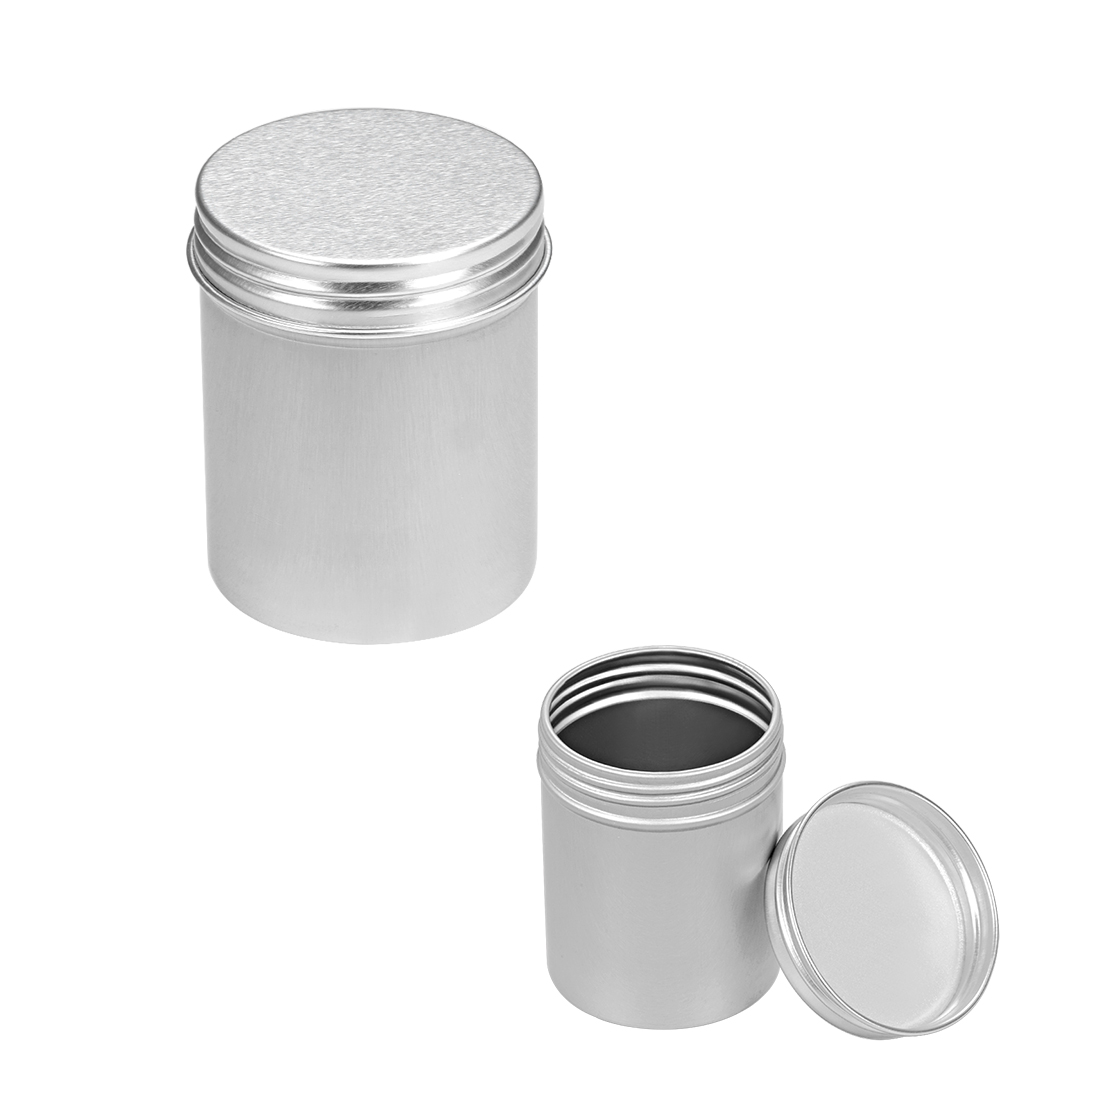 2.7oz Round Aluminum Cans Tin Can Screw Top Metal Lid Containers, 80ml, 6pcs